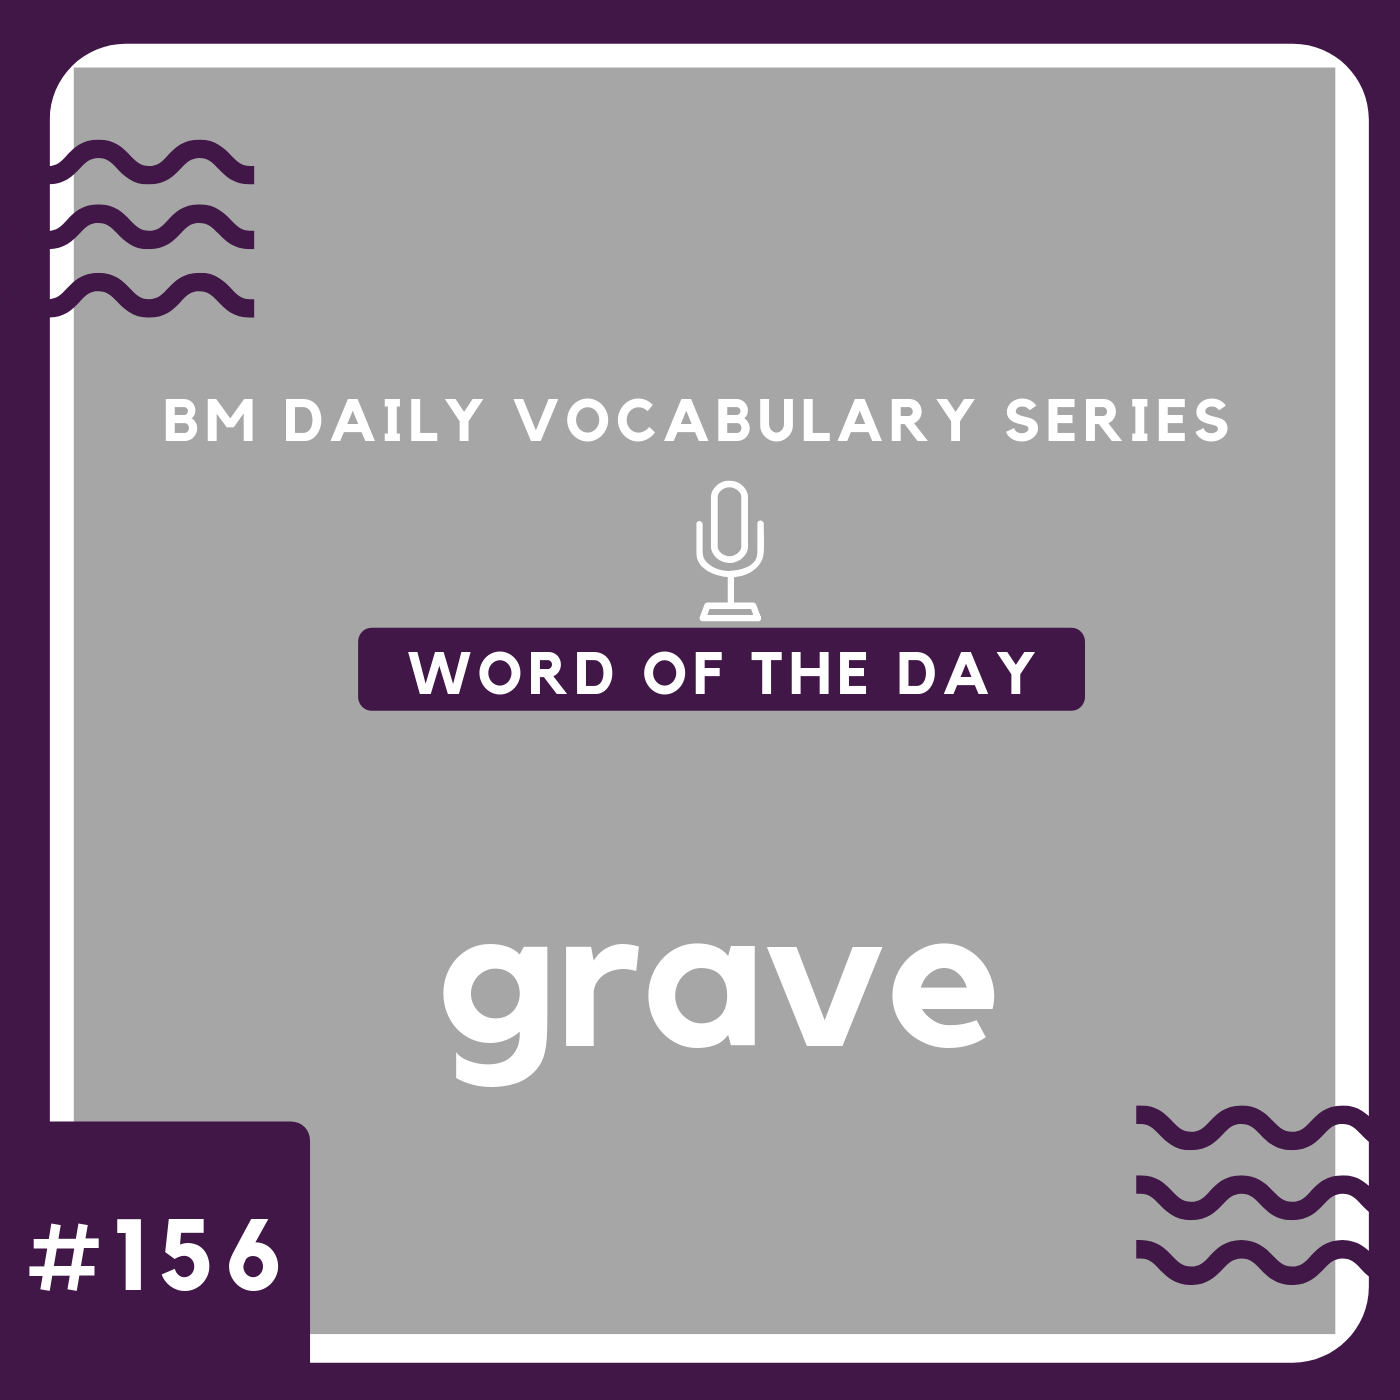 200 BM Daily Vocabulary #156 | grave